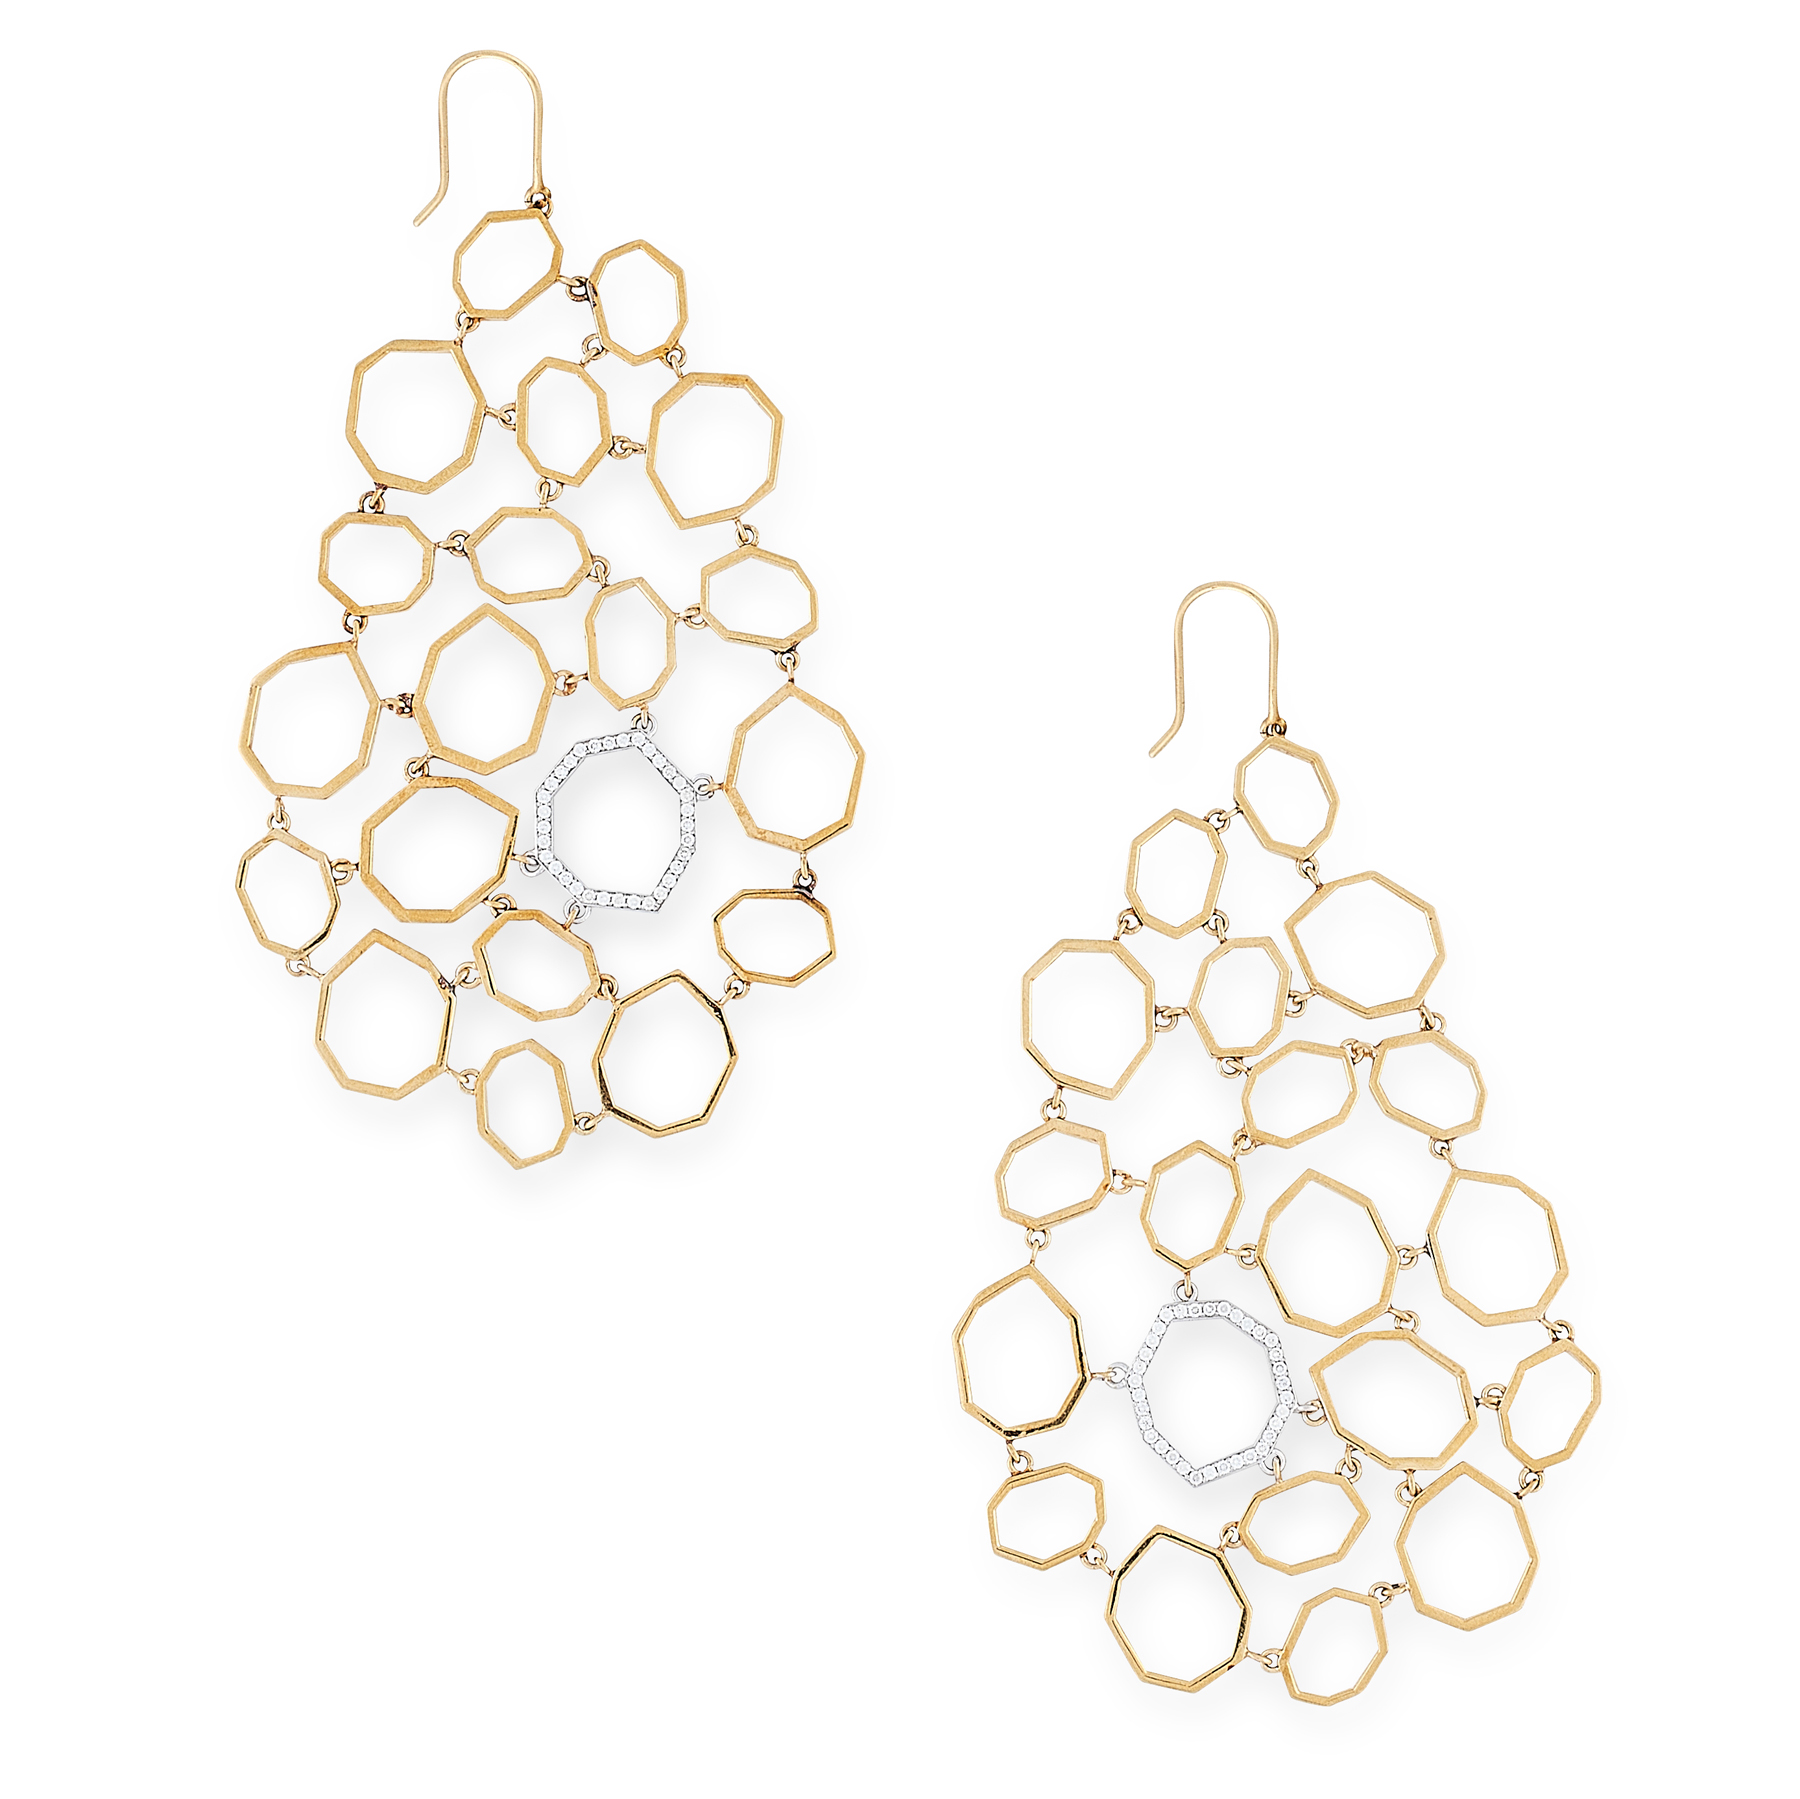 A PAIR OF DIAMOND PENDENT EARRINGS, RON HAMI in 18ct yellow and white gold, each of abstract design,